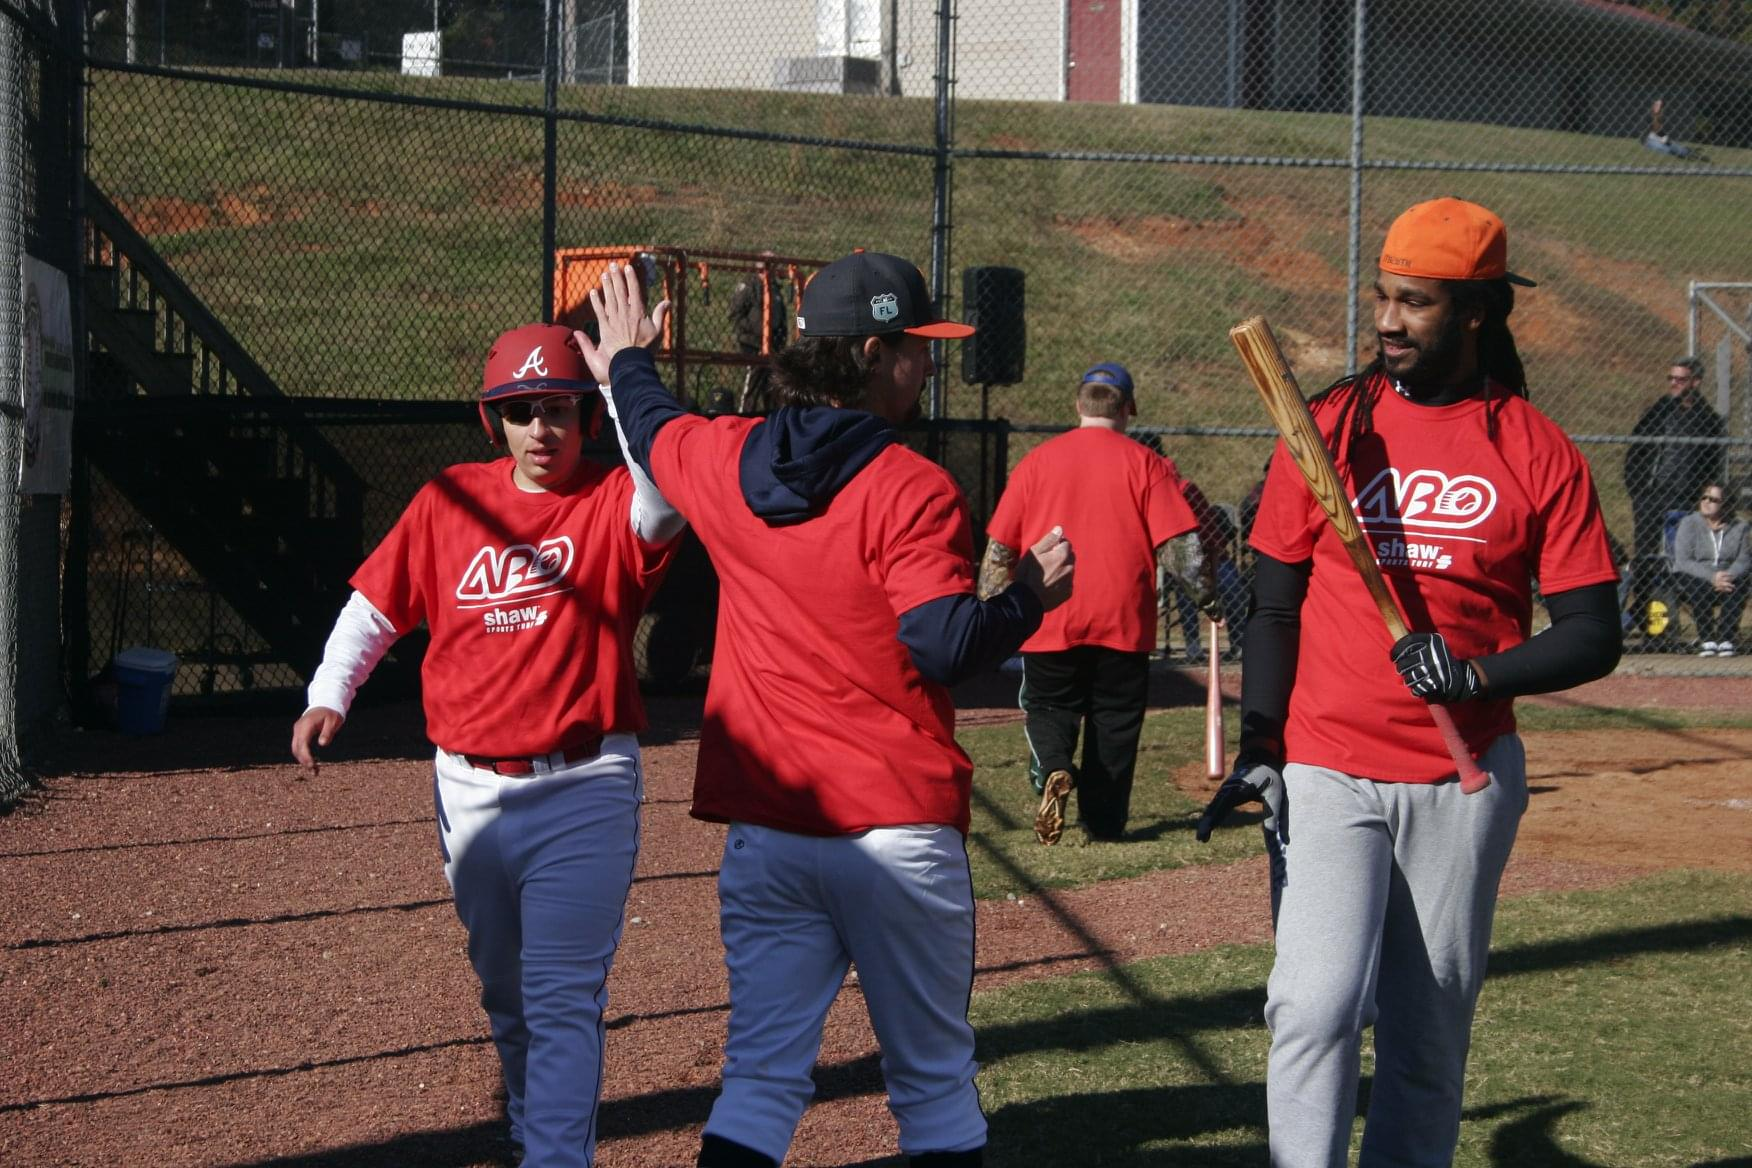 Alternative Baseball: Assisting Teens & Adults With Autism, Other Disabilities